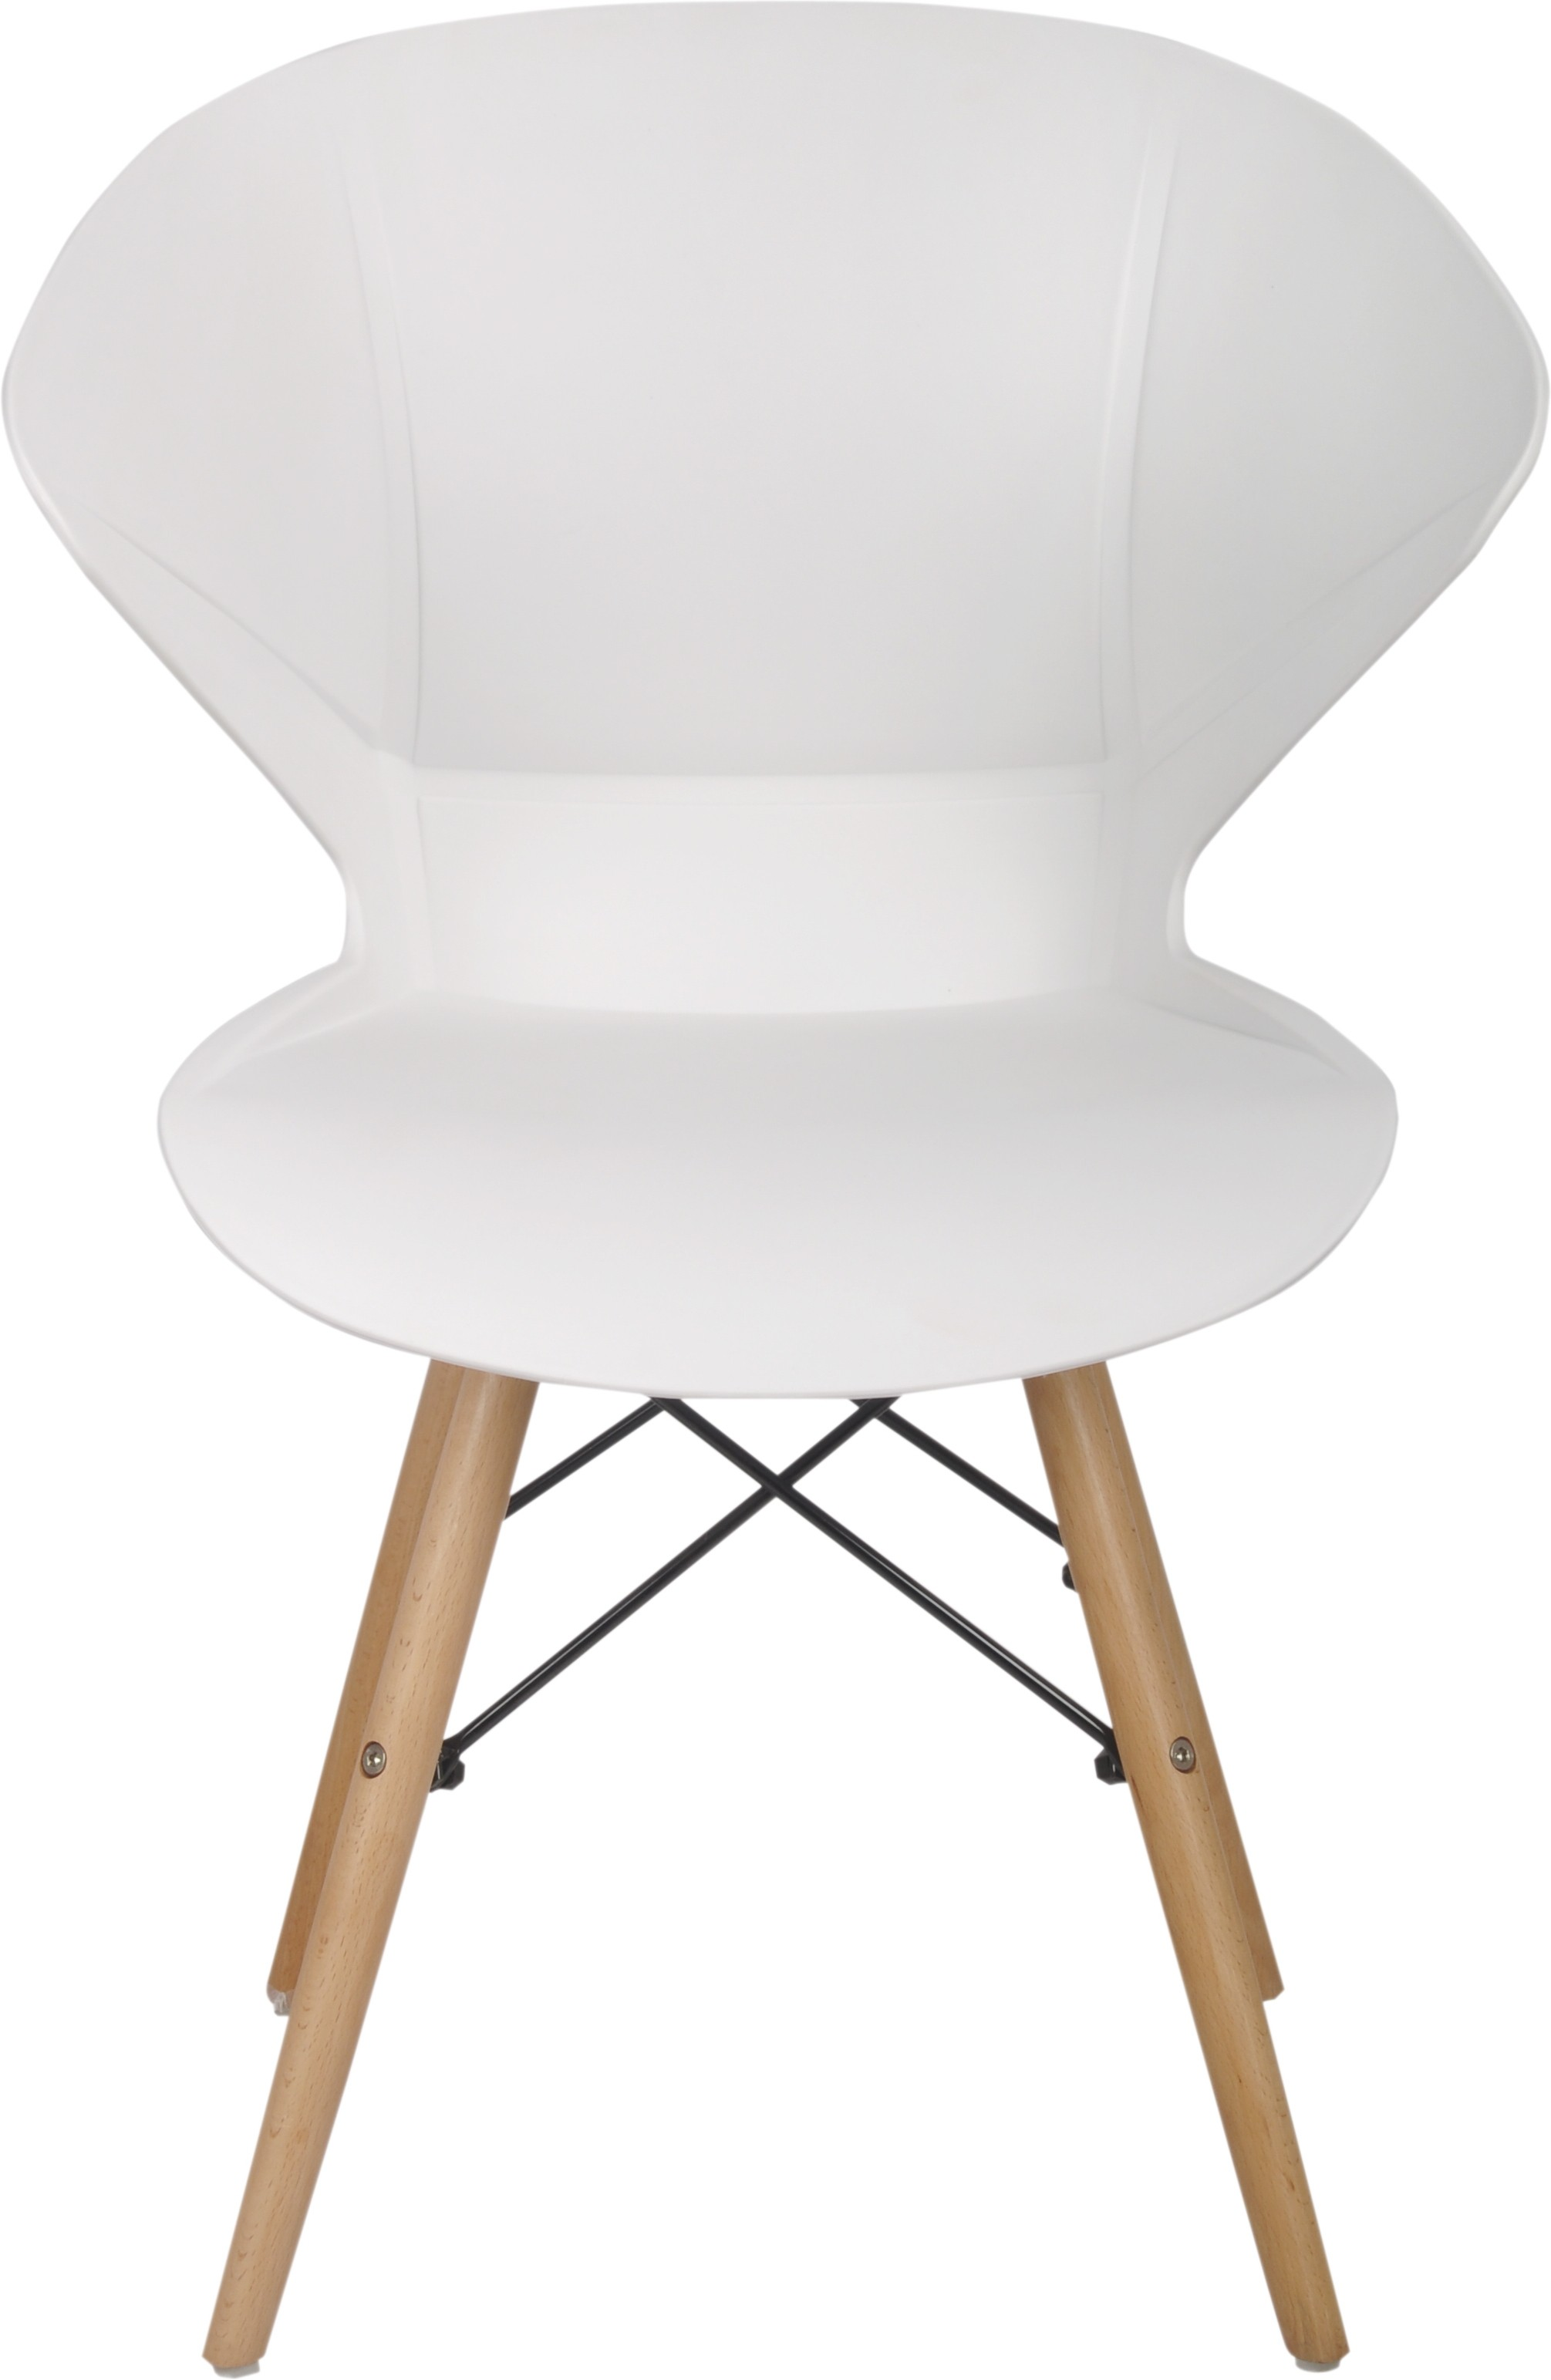 View Bharat Furniture Frog Plastic Living Room Chair(Finish Color - White) Furniture (Bharat Furniture)